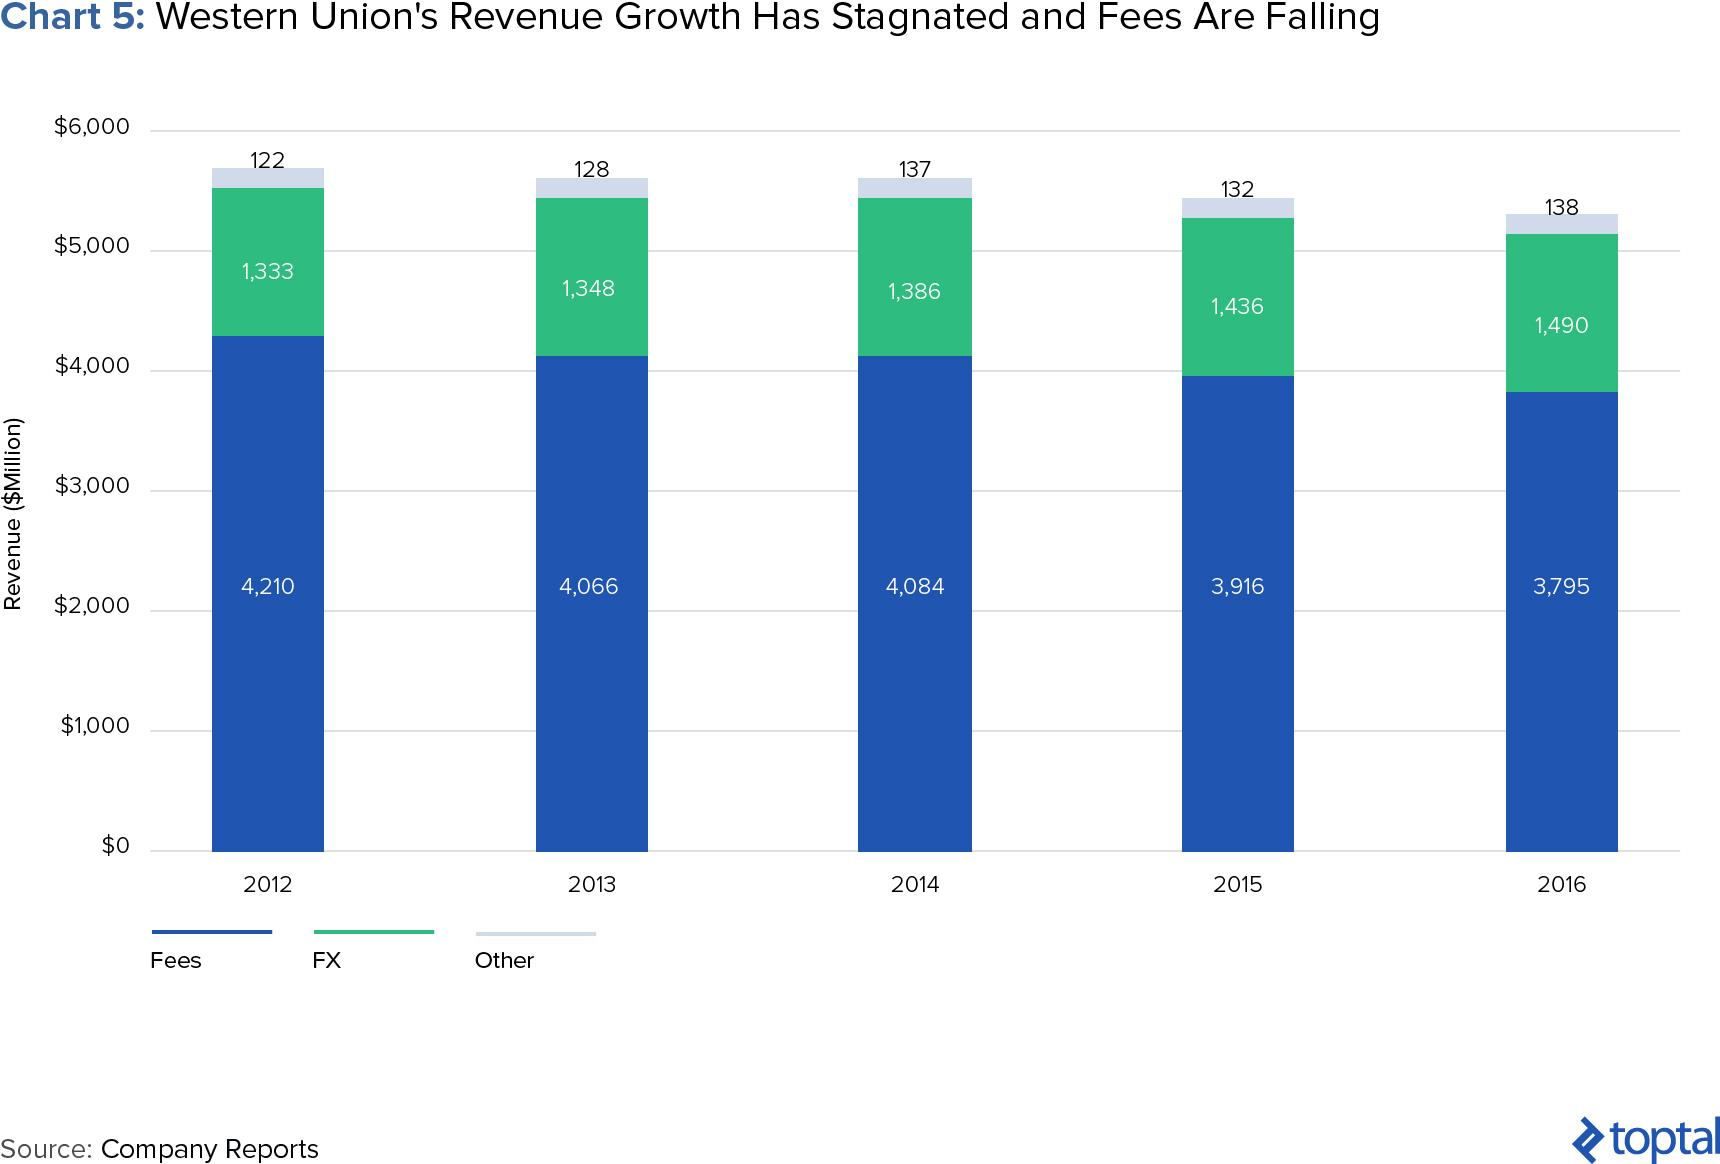 Chart 5: Western Union's Revenue Growth Has Stagnated and Fees Are Falling